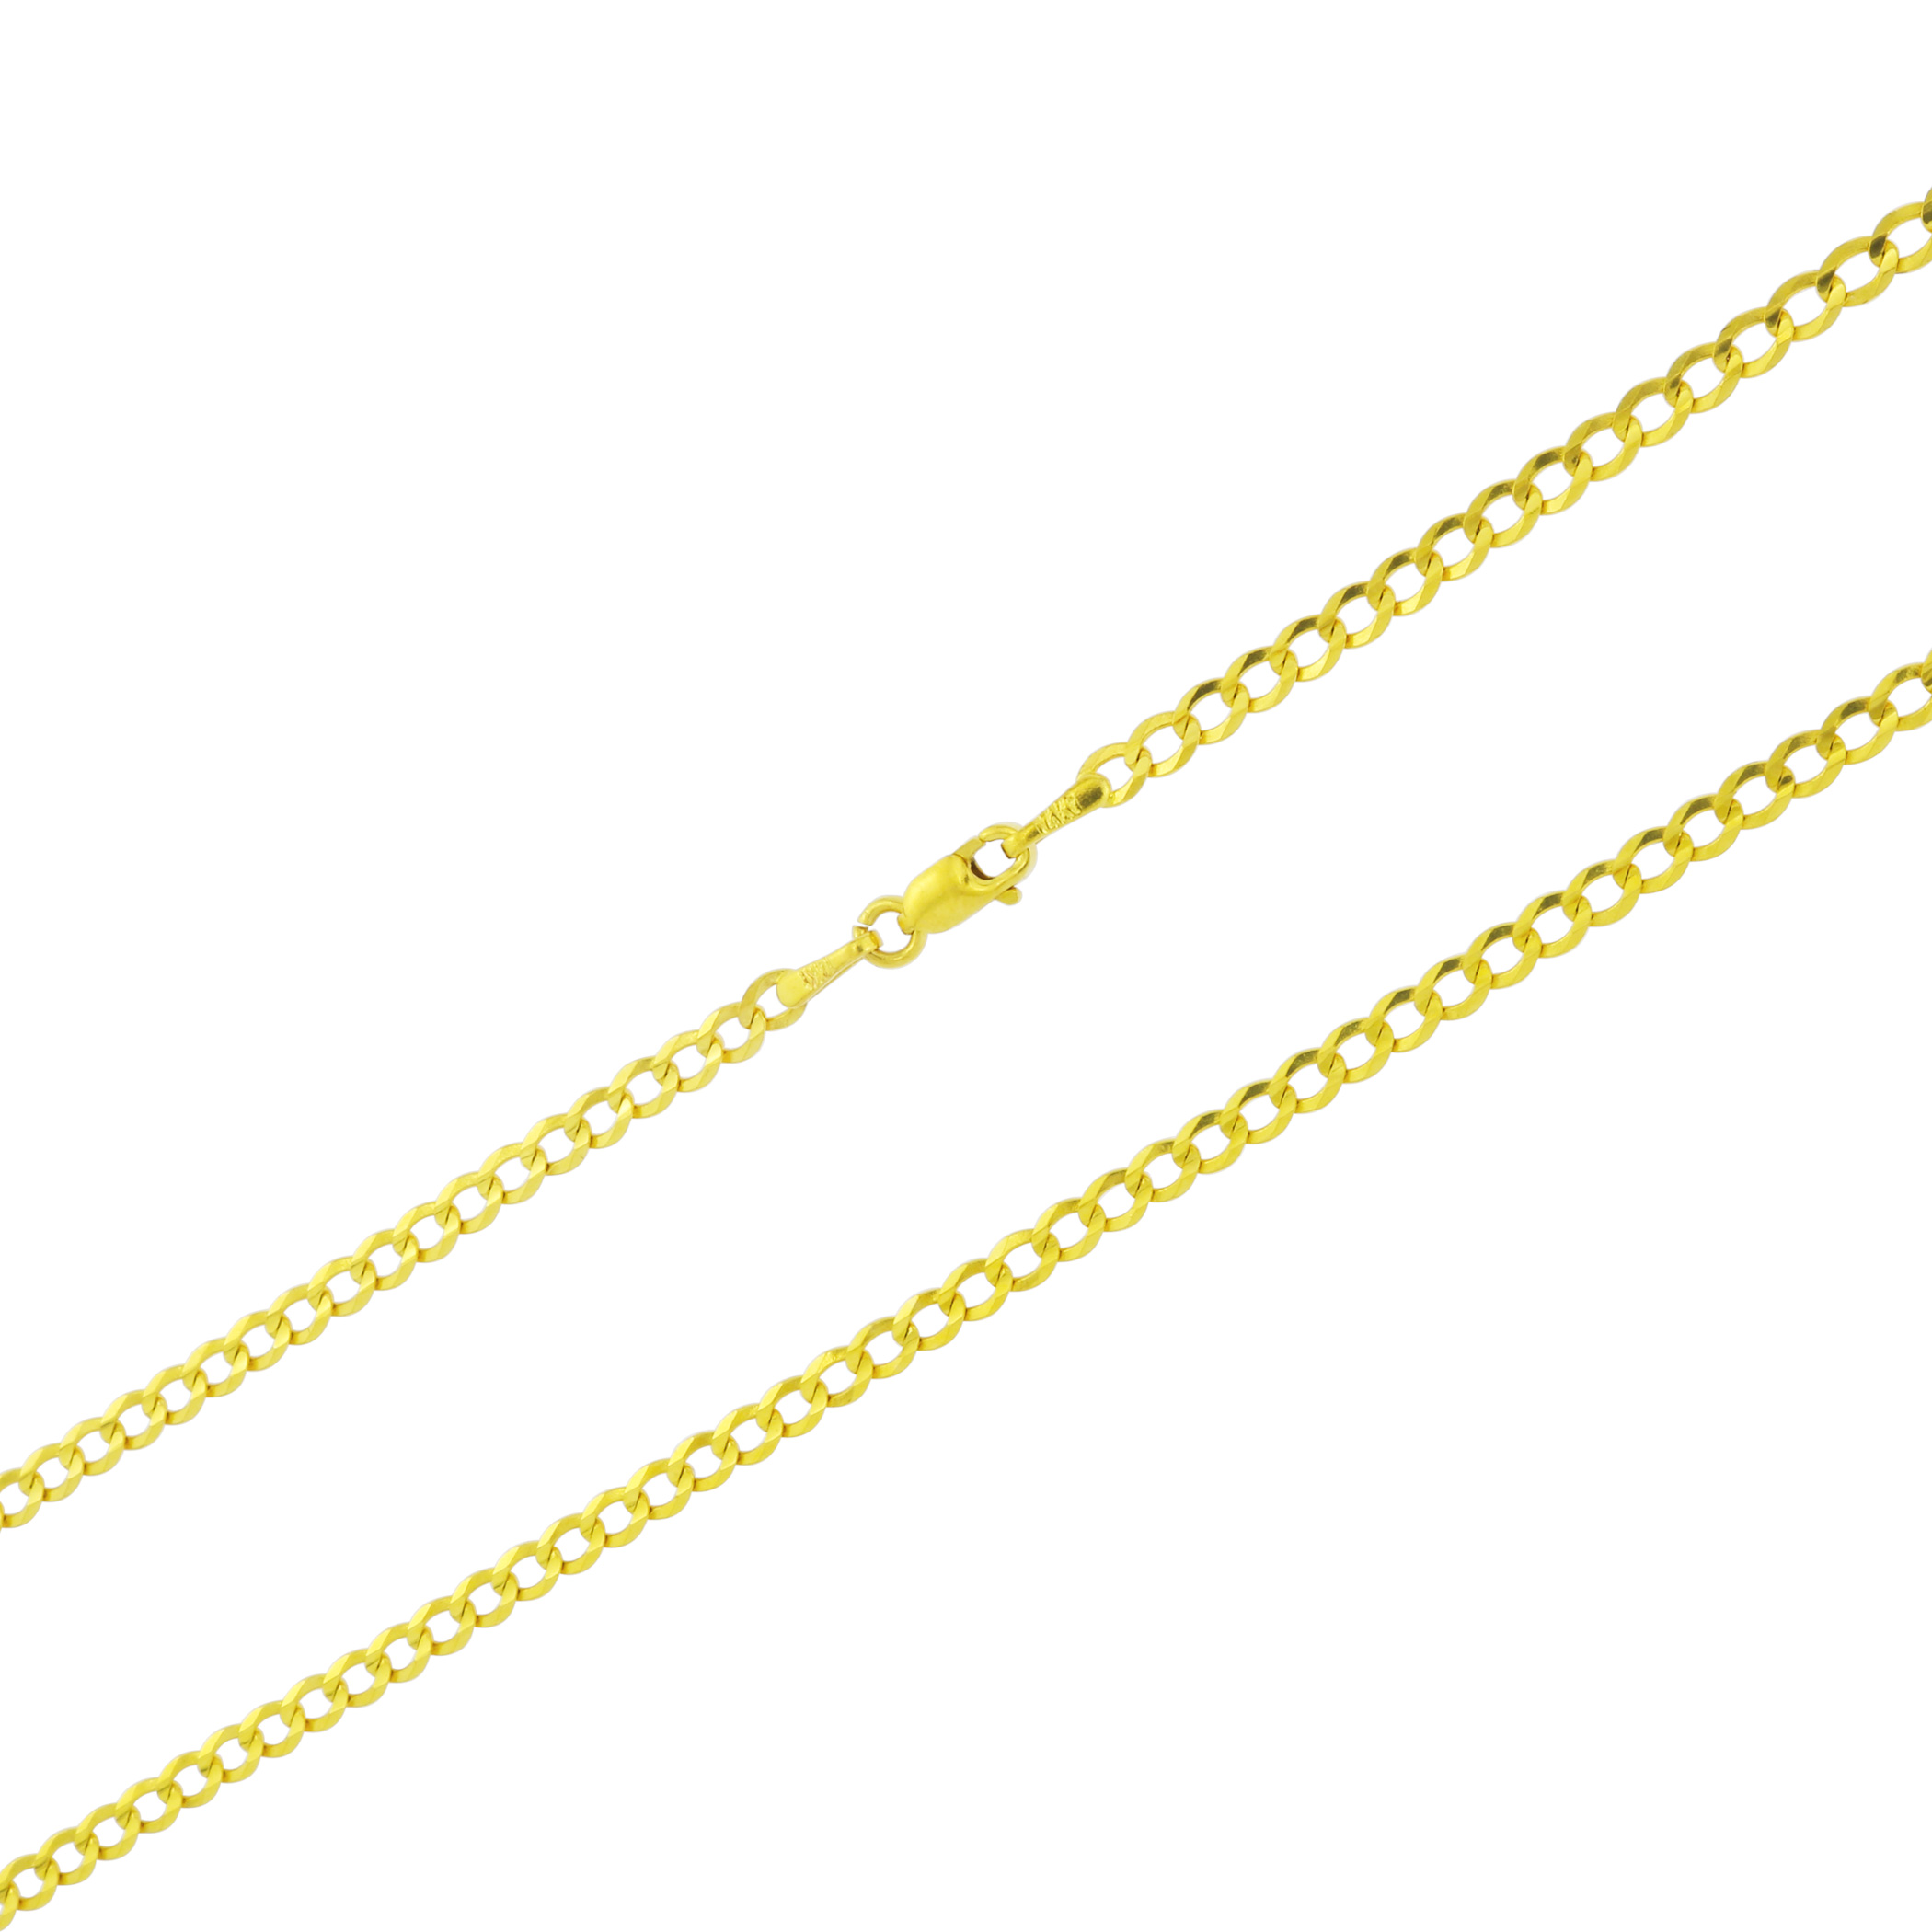 Real-14k-Yellow-Gold-Women-Solid-2-5mm-Curb-Cuban-Chain-Bracelet-or-Anklet-7-034-9-034 thumbnail 17